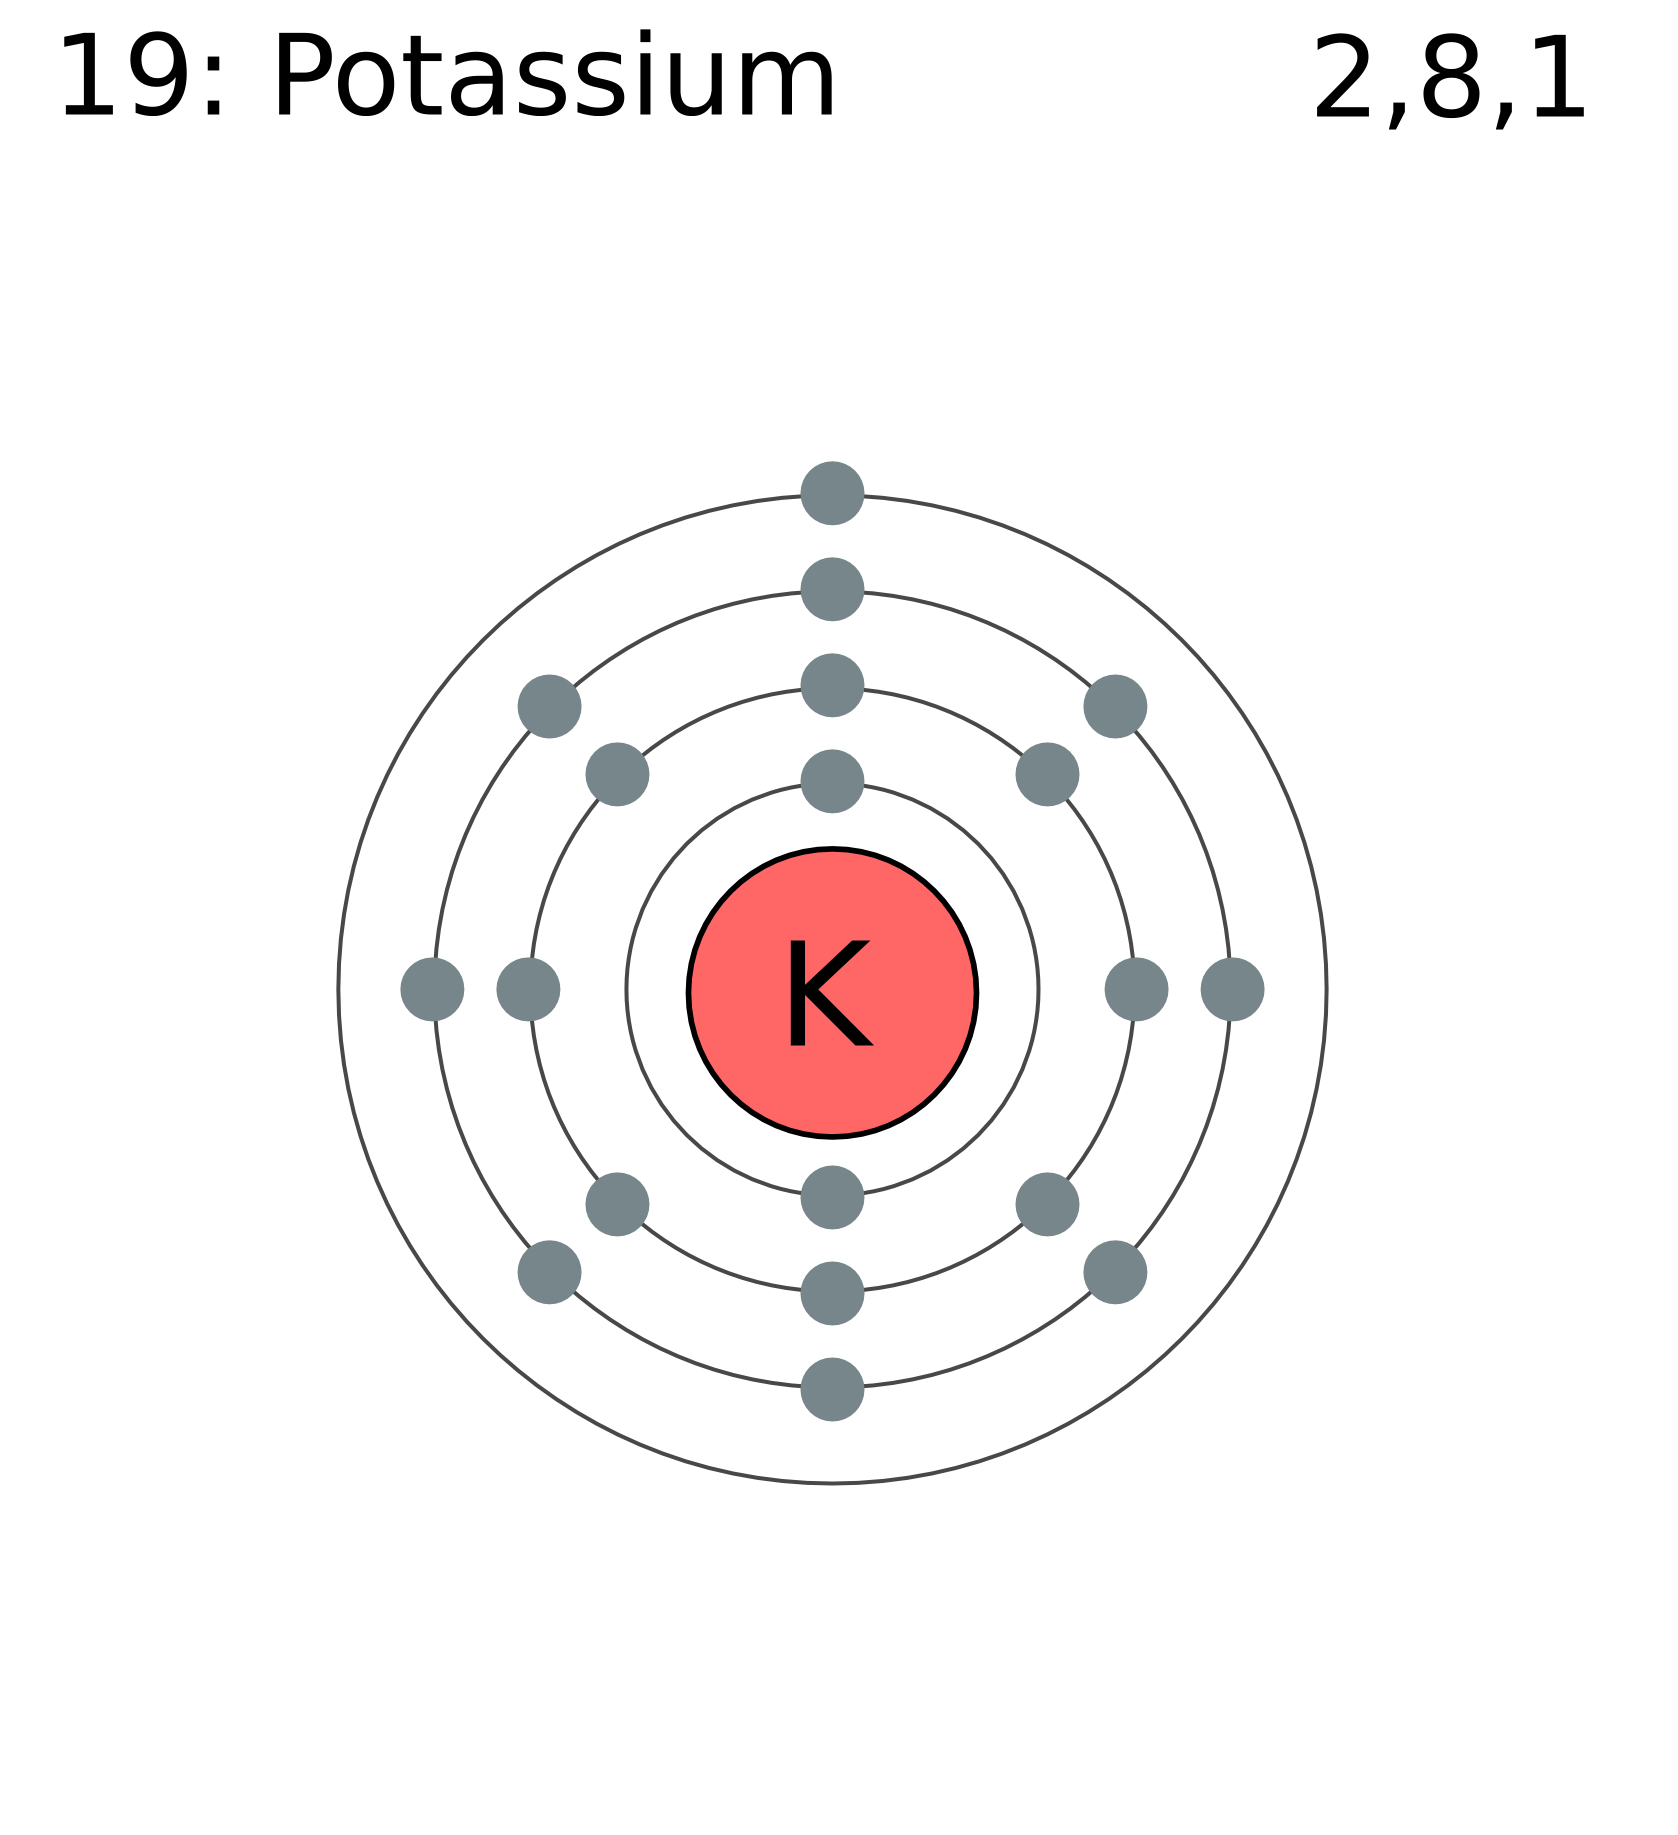 hight resolution of potassium is the third most abundant mineral in human body it is the chemical element with the symbol k atomic number 19 potassium is a very important